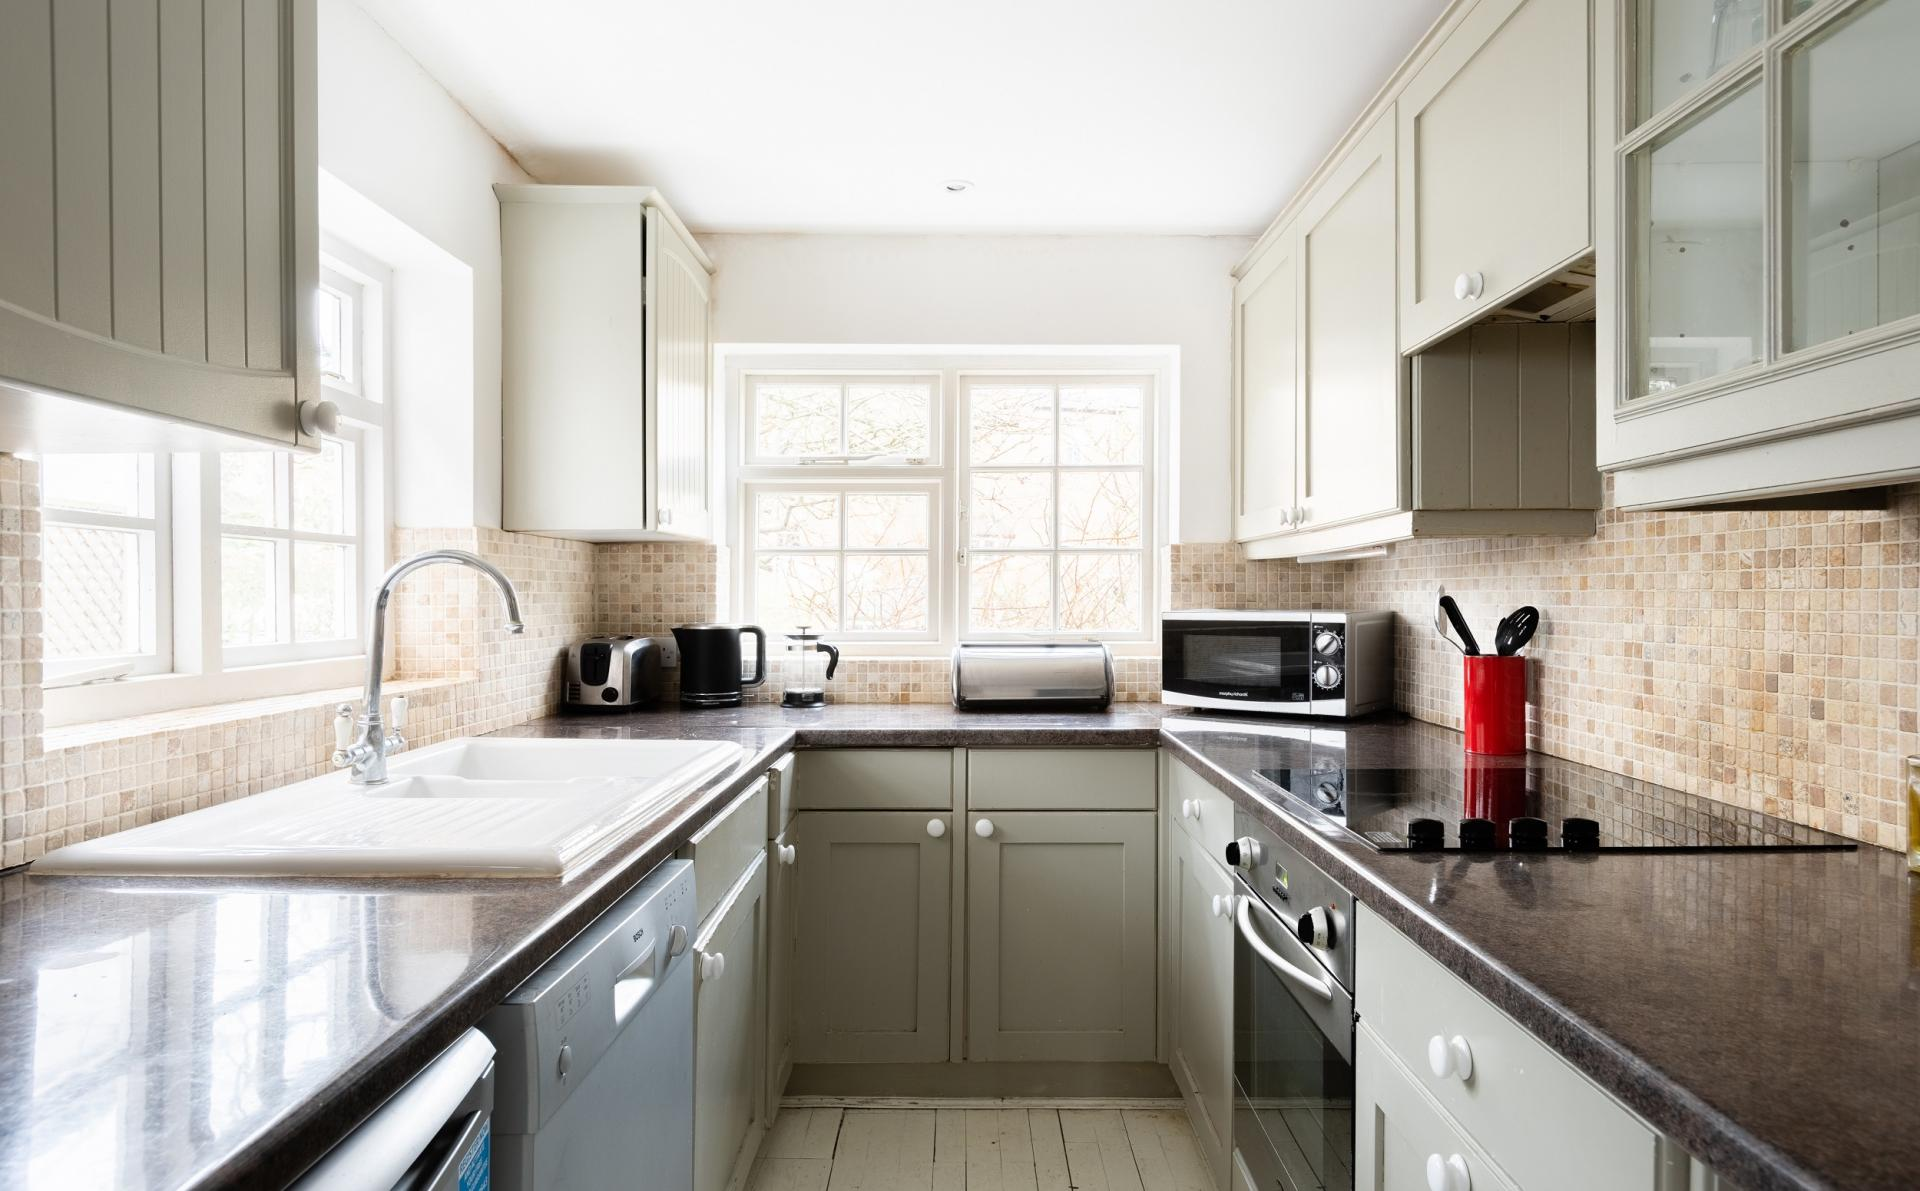 Kitchen at The Writer's Townhouse, Centre, Oxford - Citybase Apartments